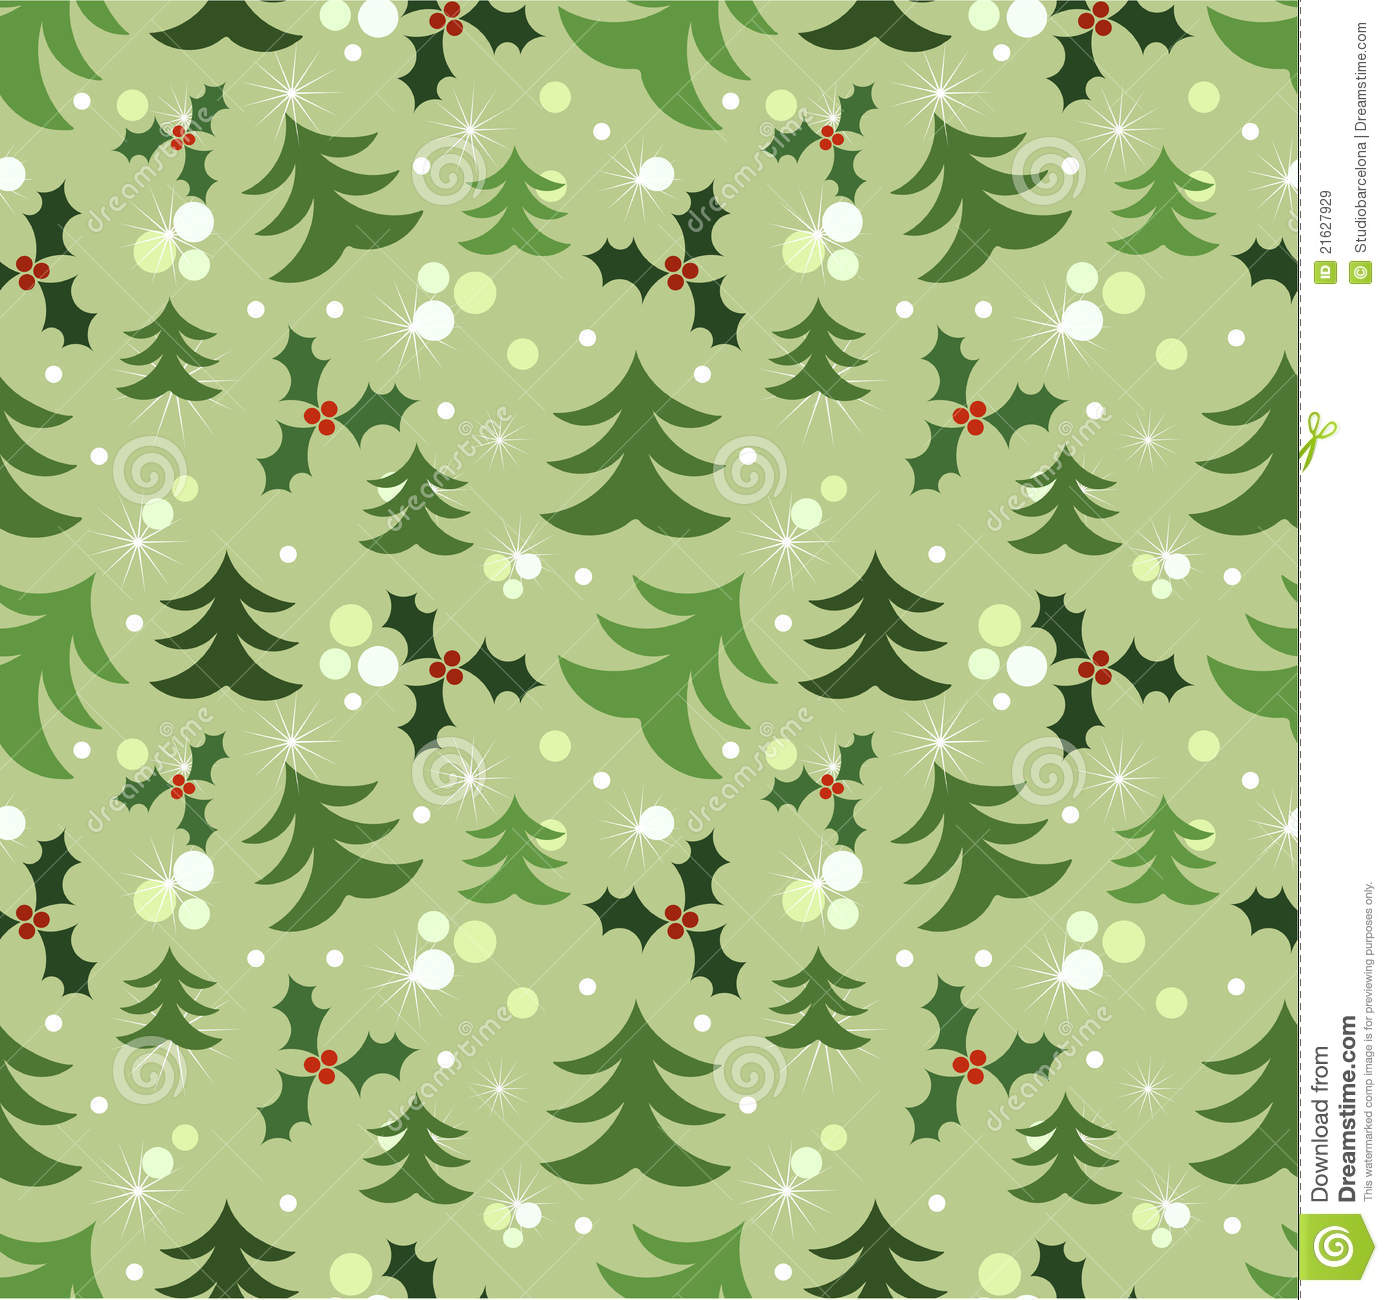 Christmas Wall Paper.Christmas Wallpaper Stock Vector Illustration Of Backdrop